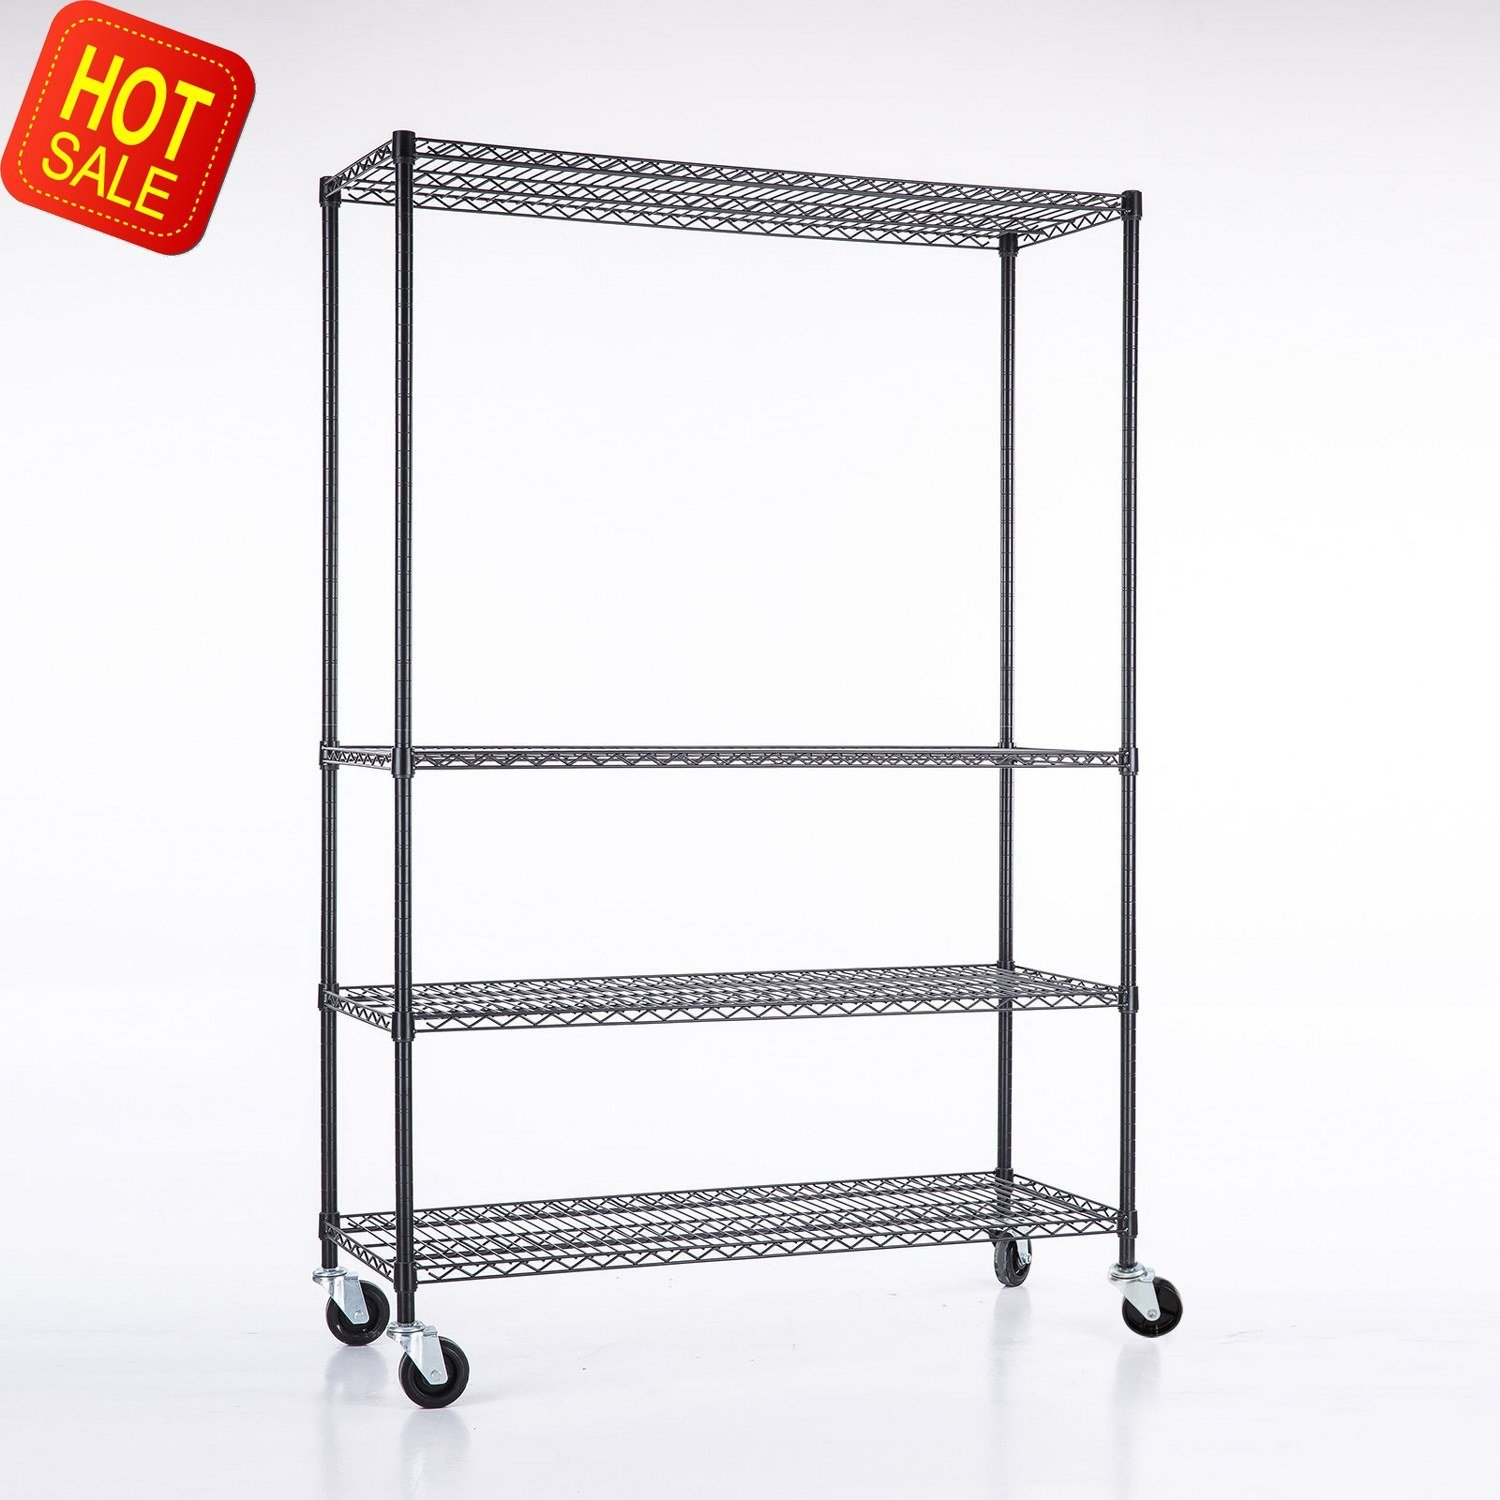 Adjustable Heavy Duty 4 Tier Shelving Rack Weight Capacity 200 Lbs. Steel Wire Metal Shelf New by Okapi (Image #1)